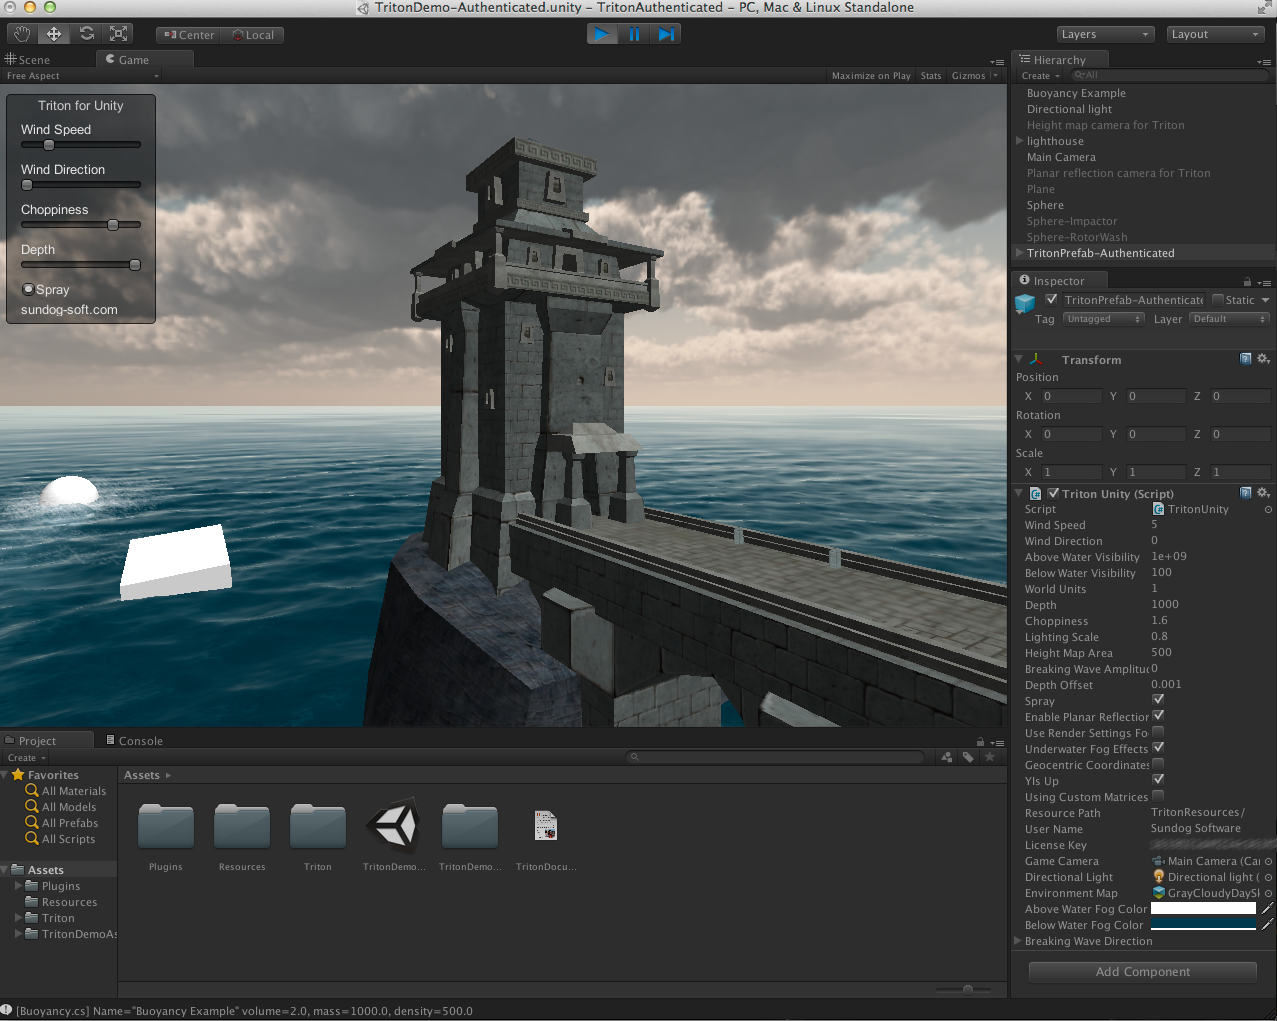 Barely Illegal: How to get Unity 3D Pro for Free